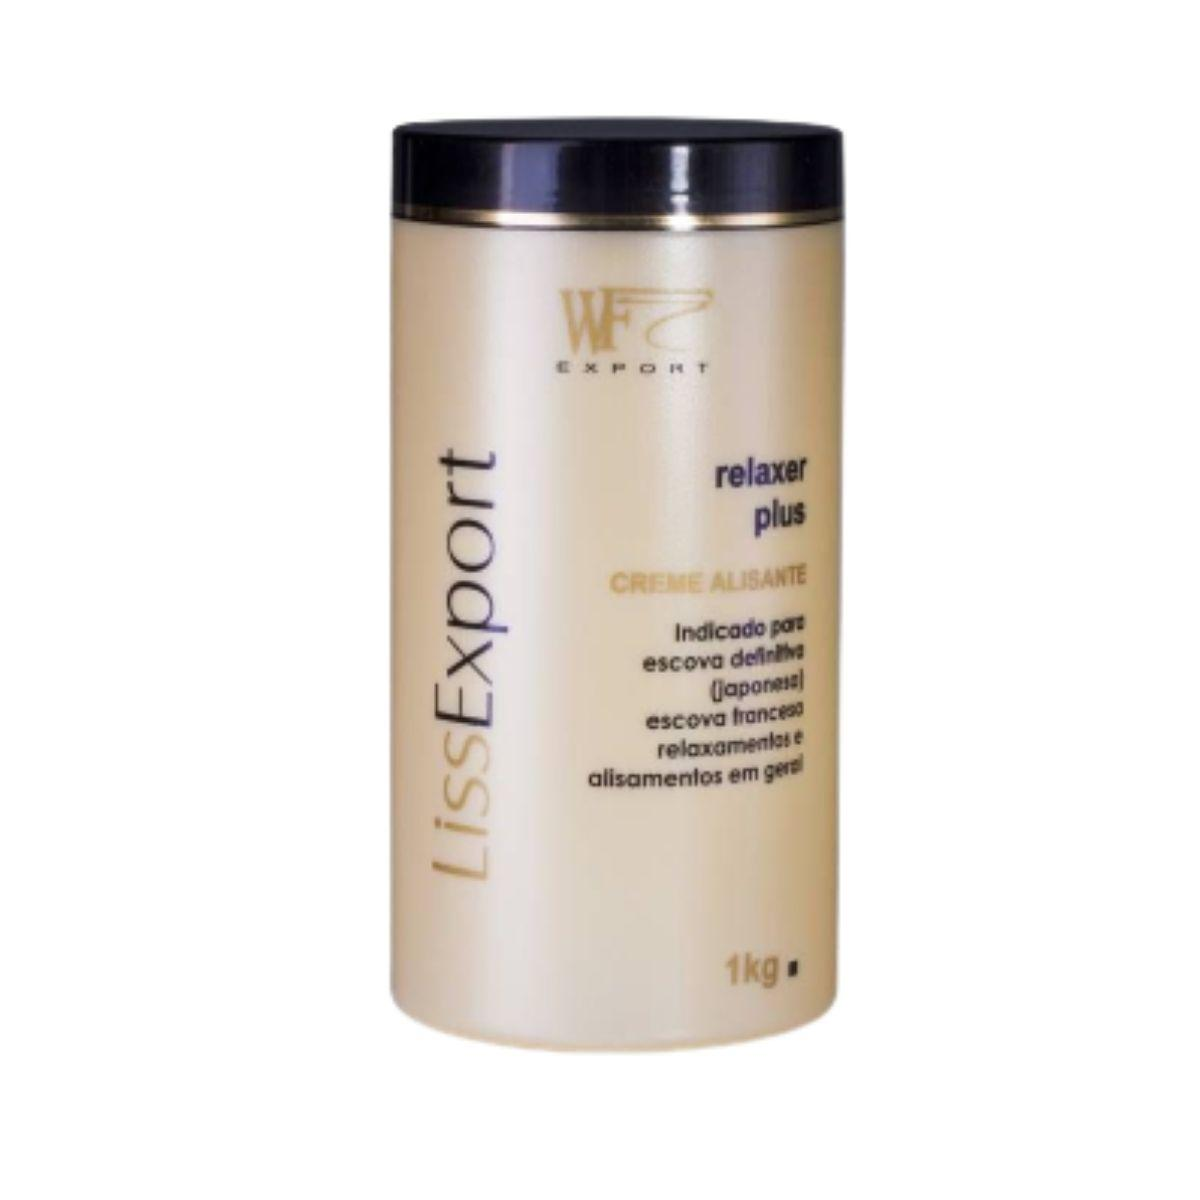 LISS EXPORT - ALISANTE RELAXER PLUS SUAVE WF COSMETICOS 1KG